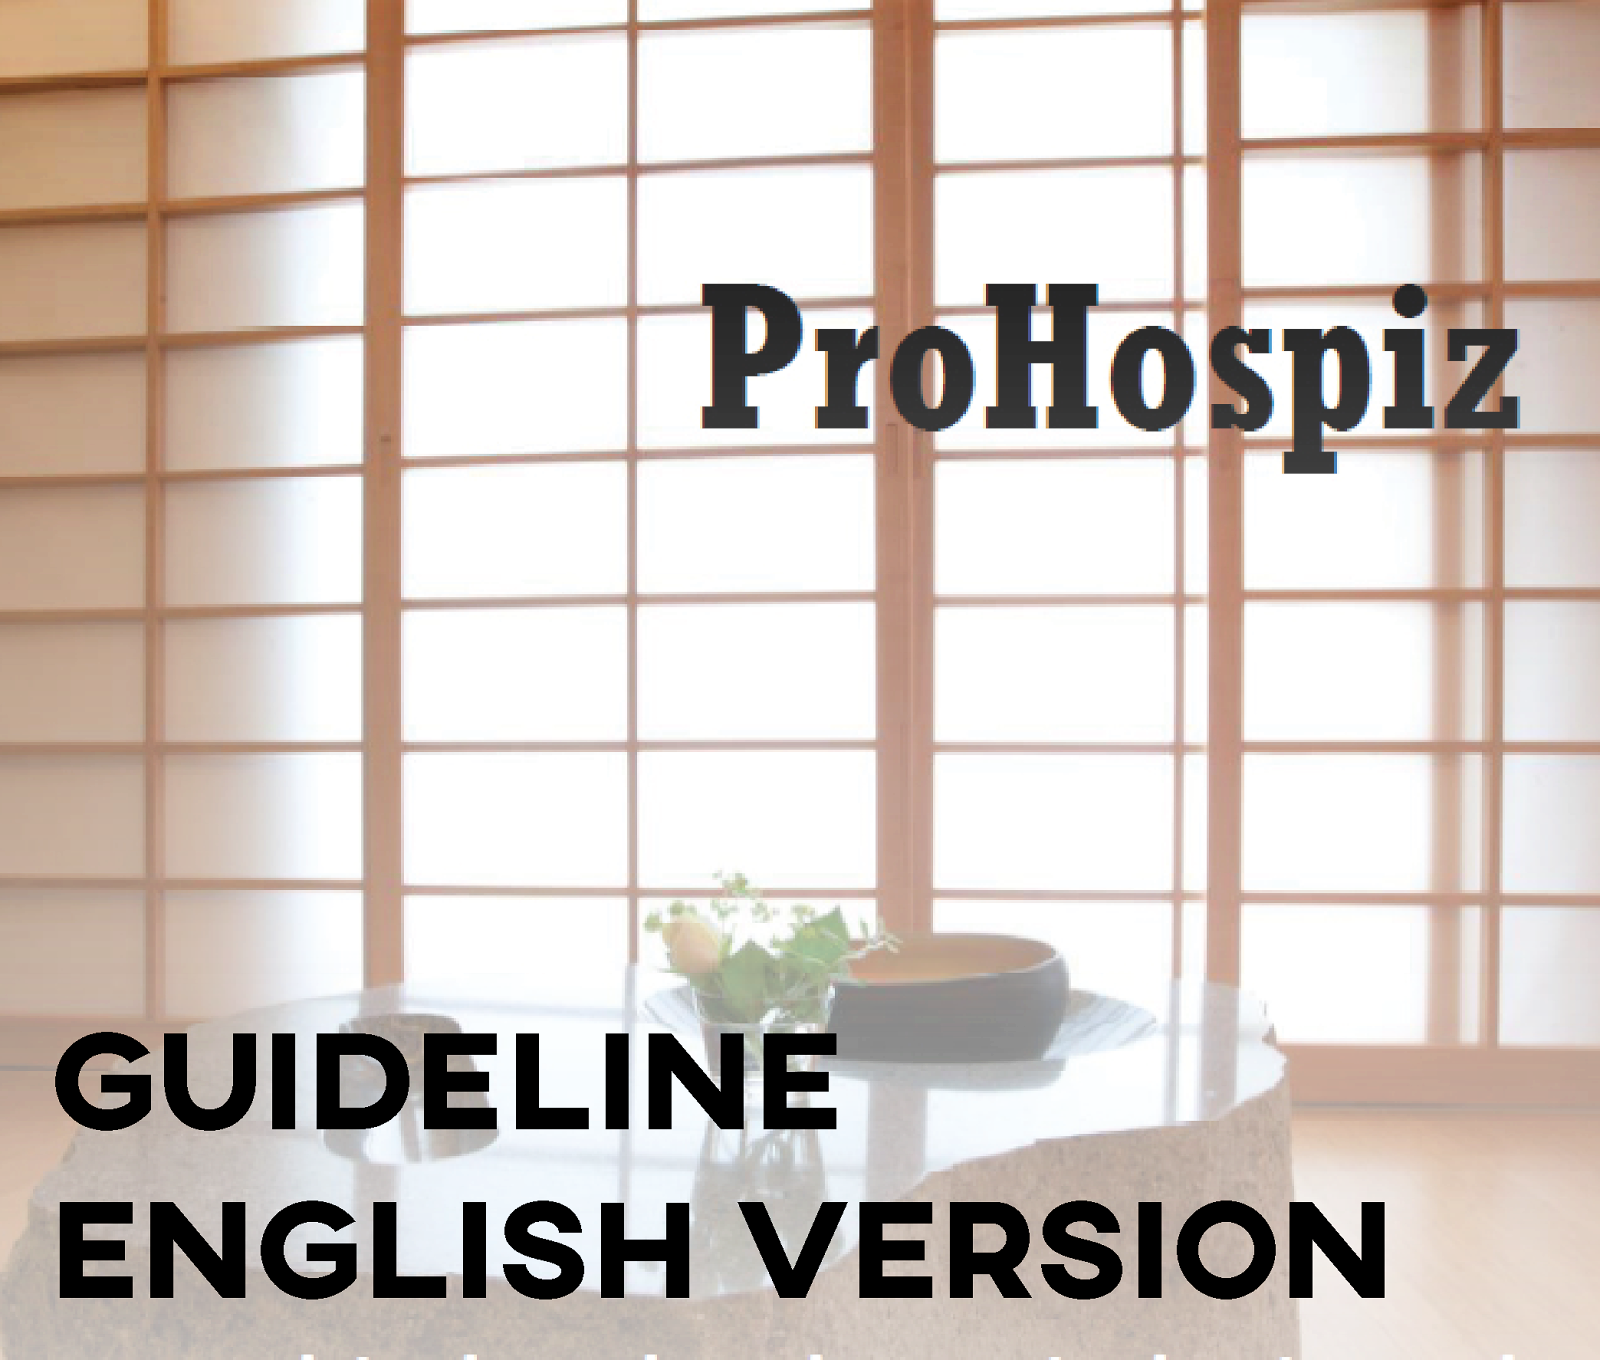 Guideline in English